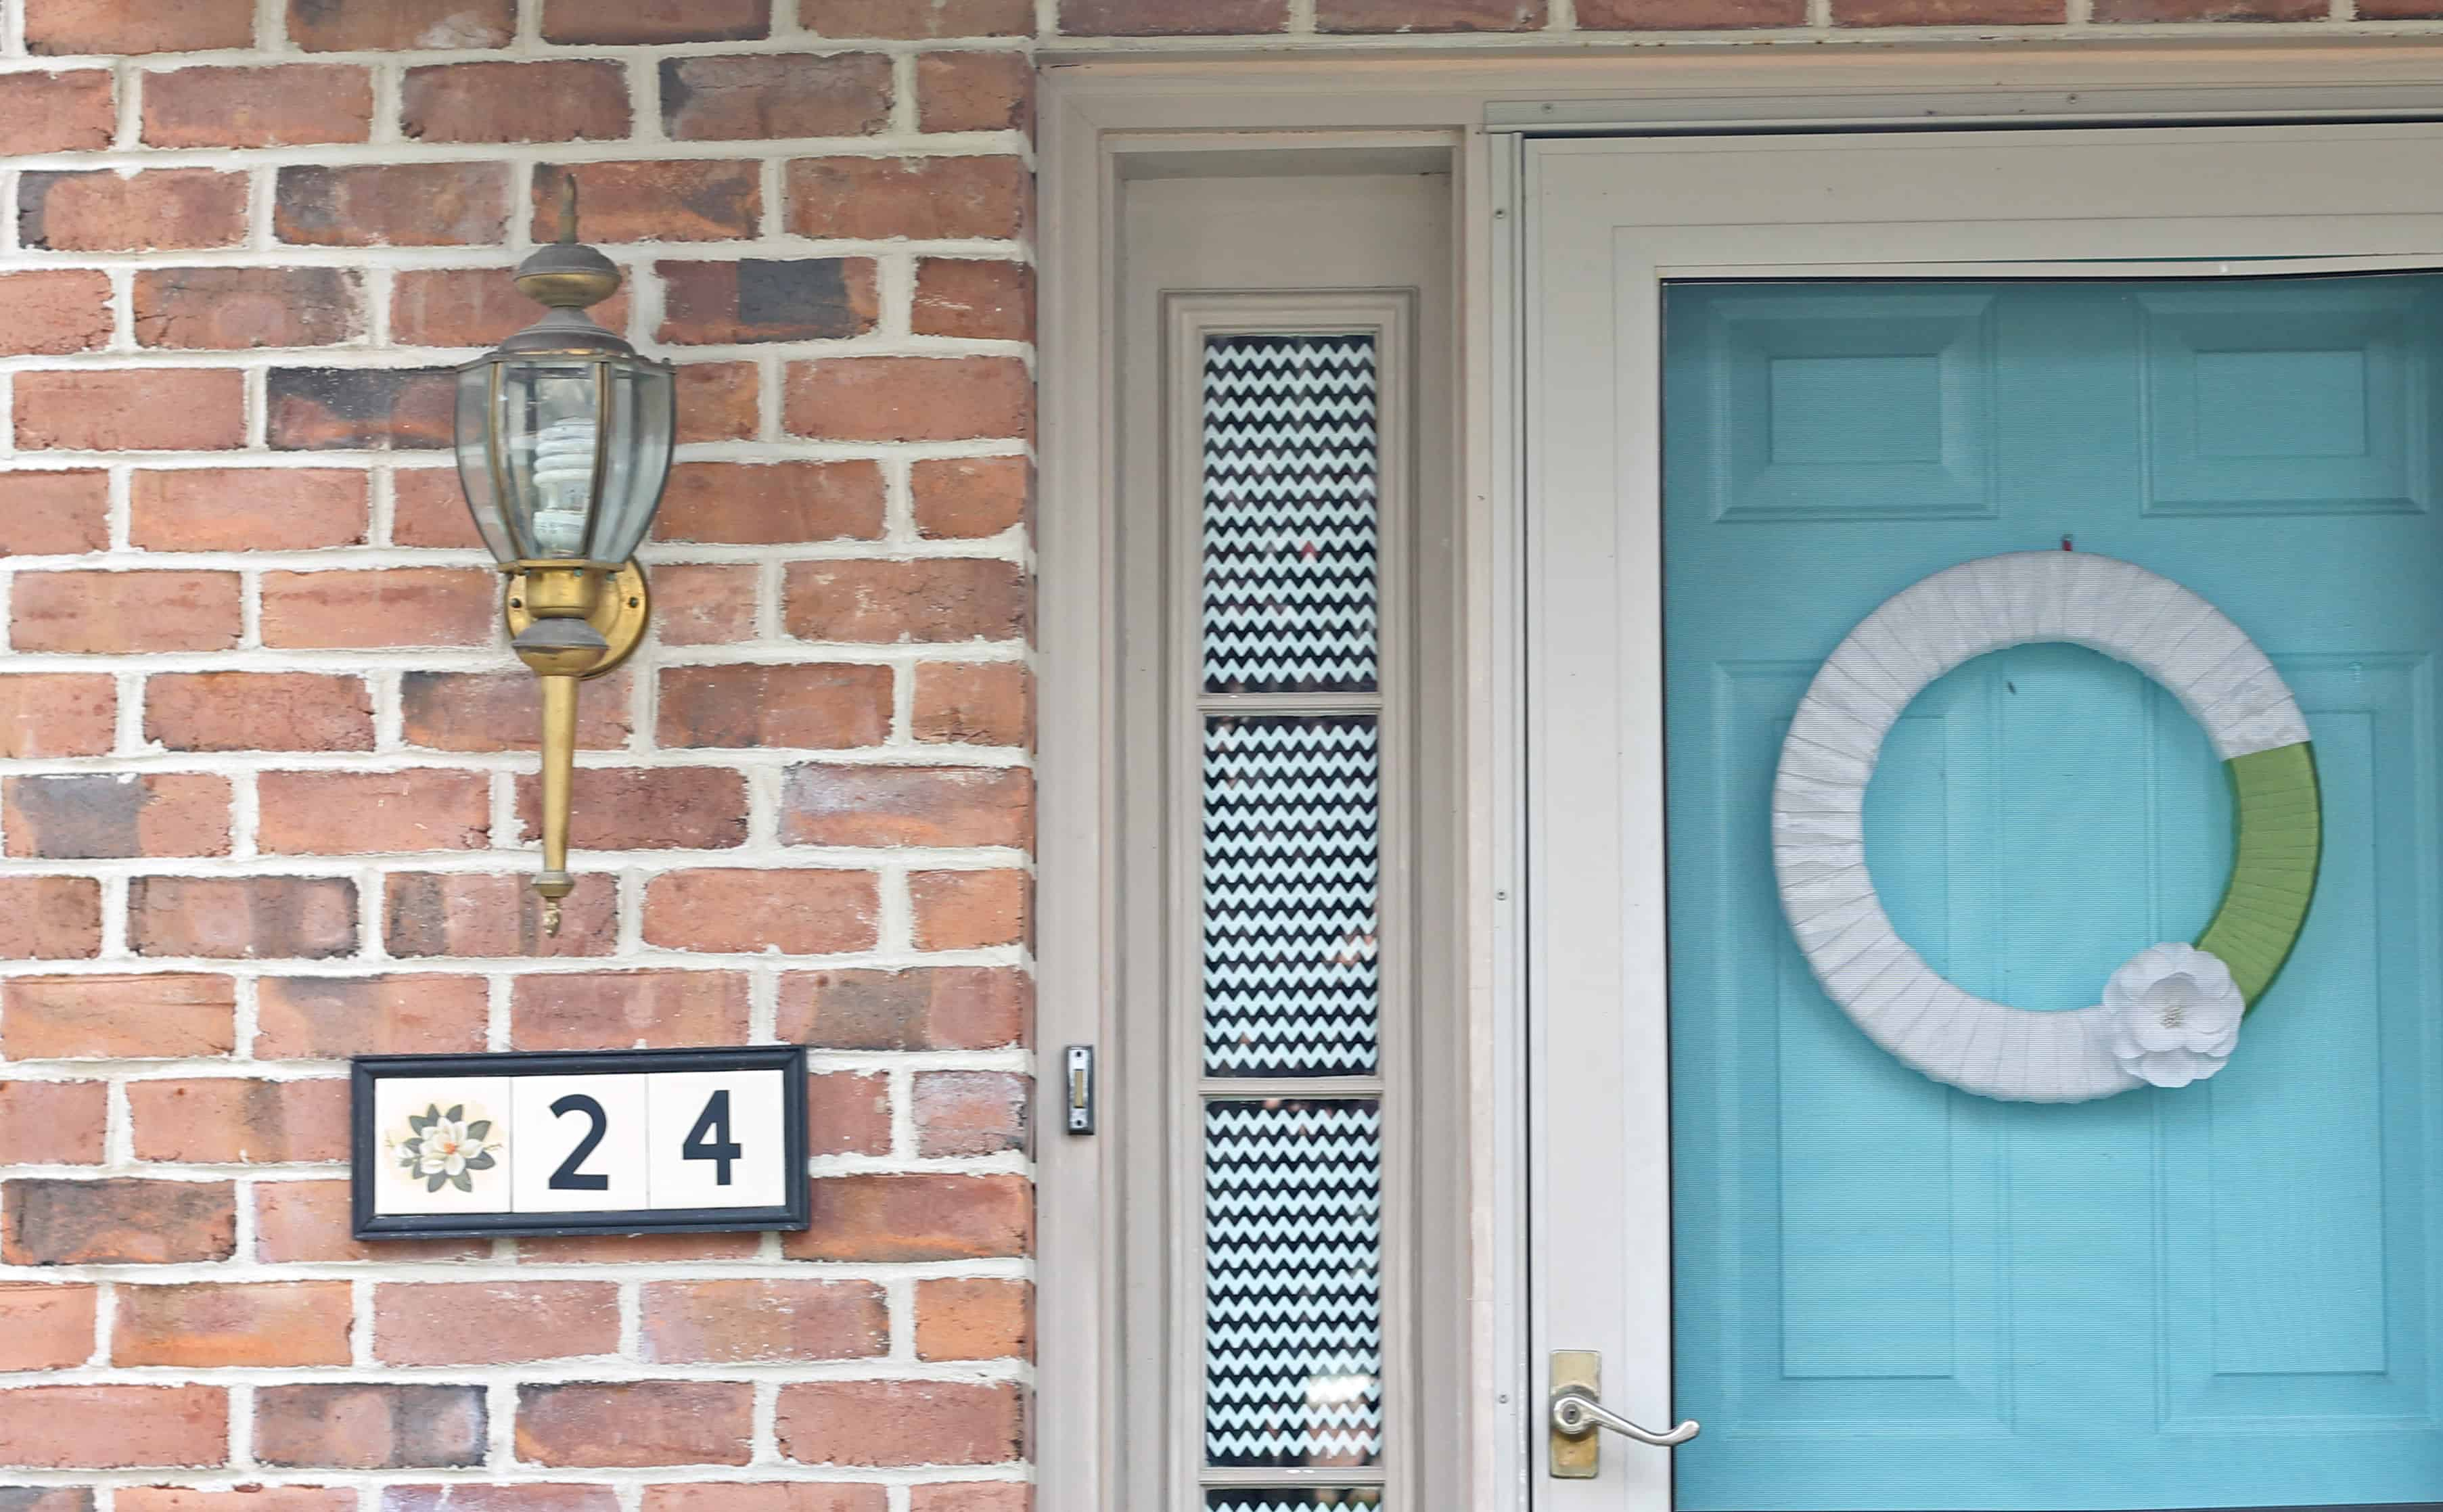 House Number Plaque A Turtle S Life For Me